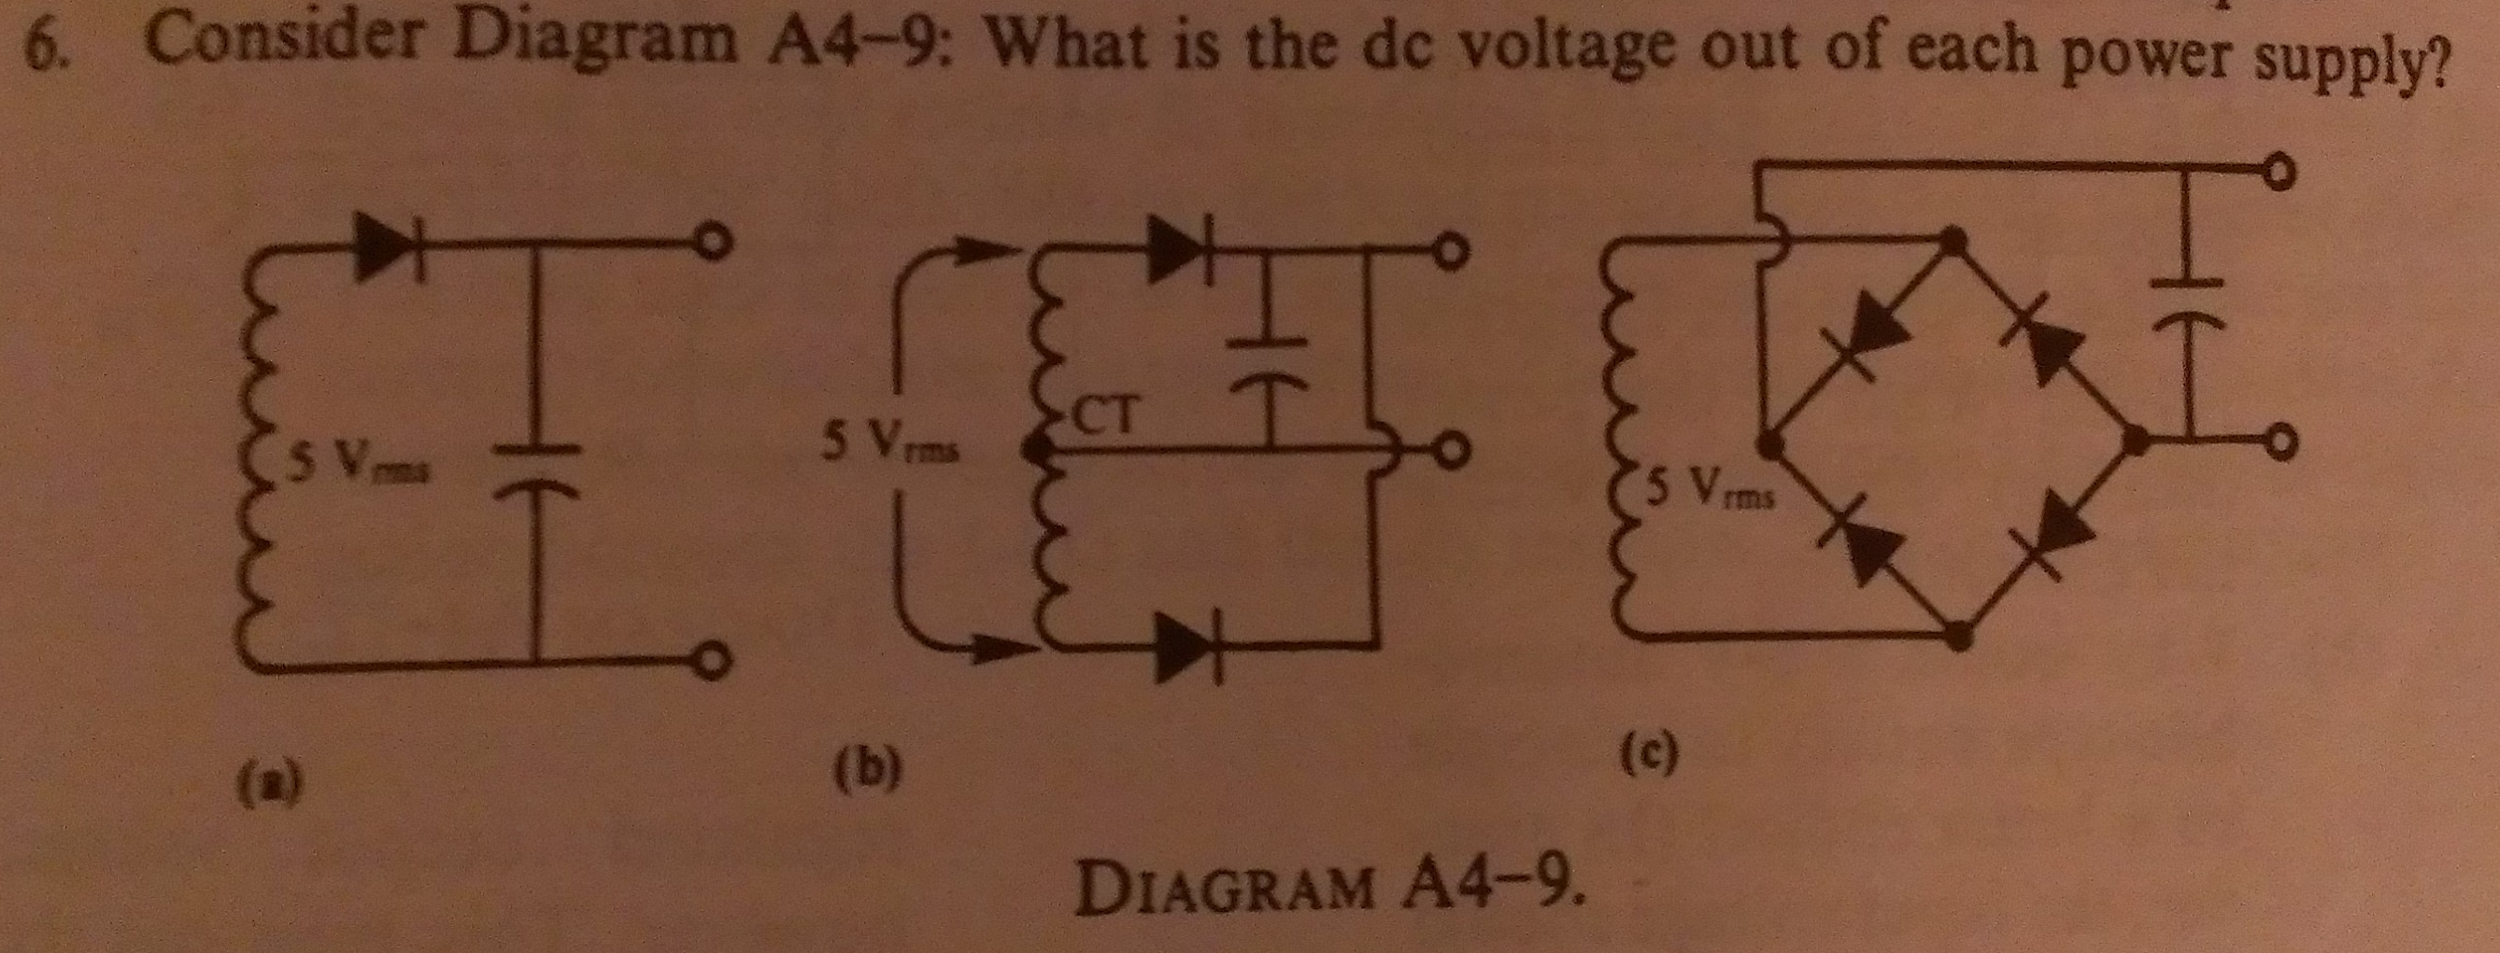 Consider Diagram A4-9: What is the dc voltage out